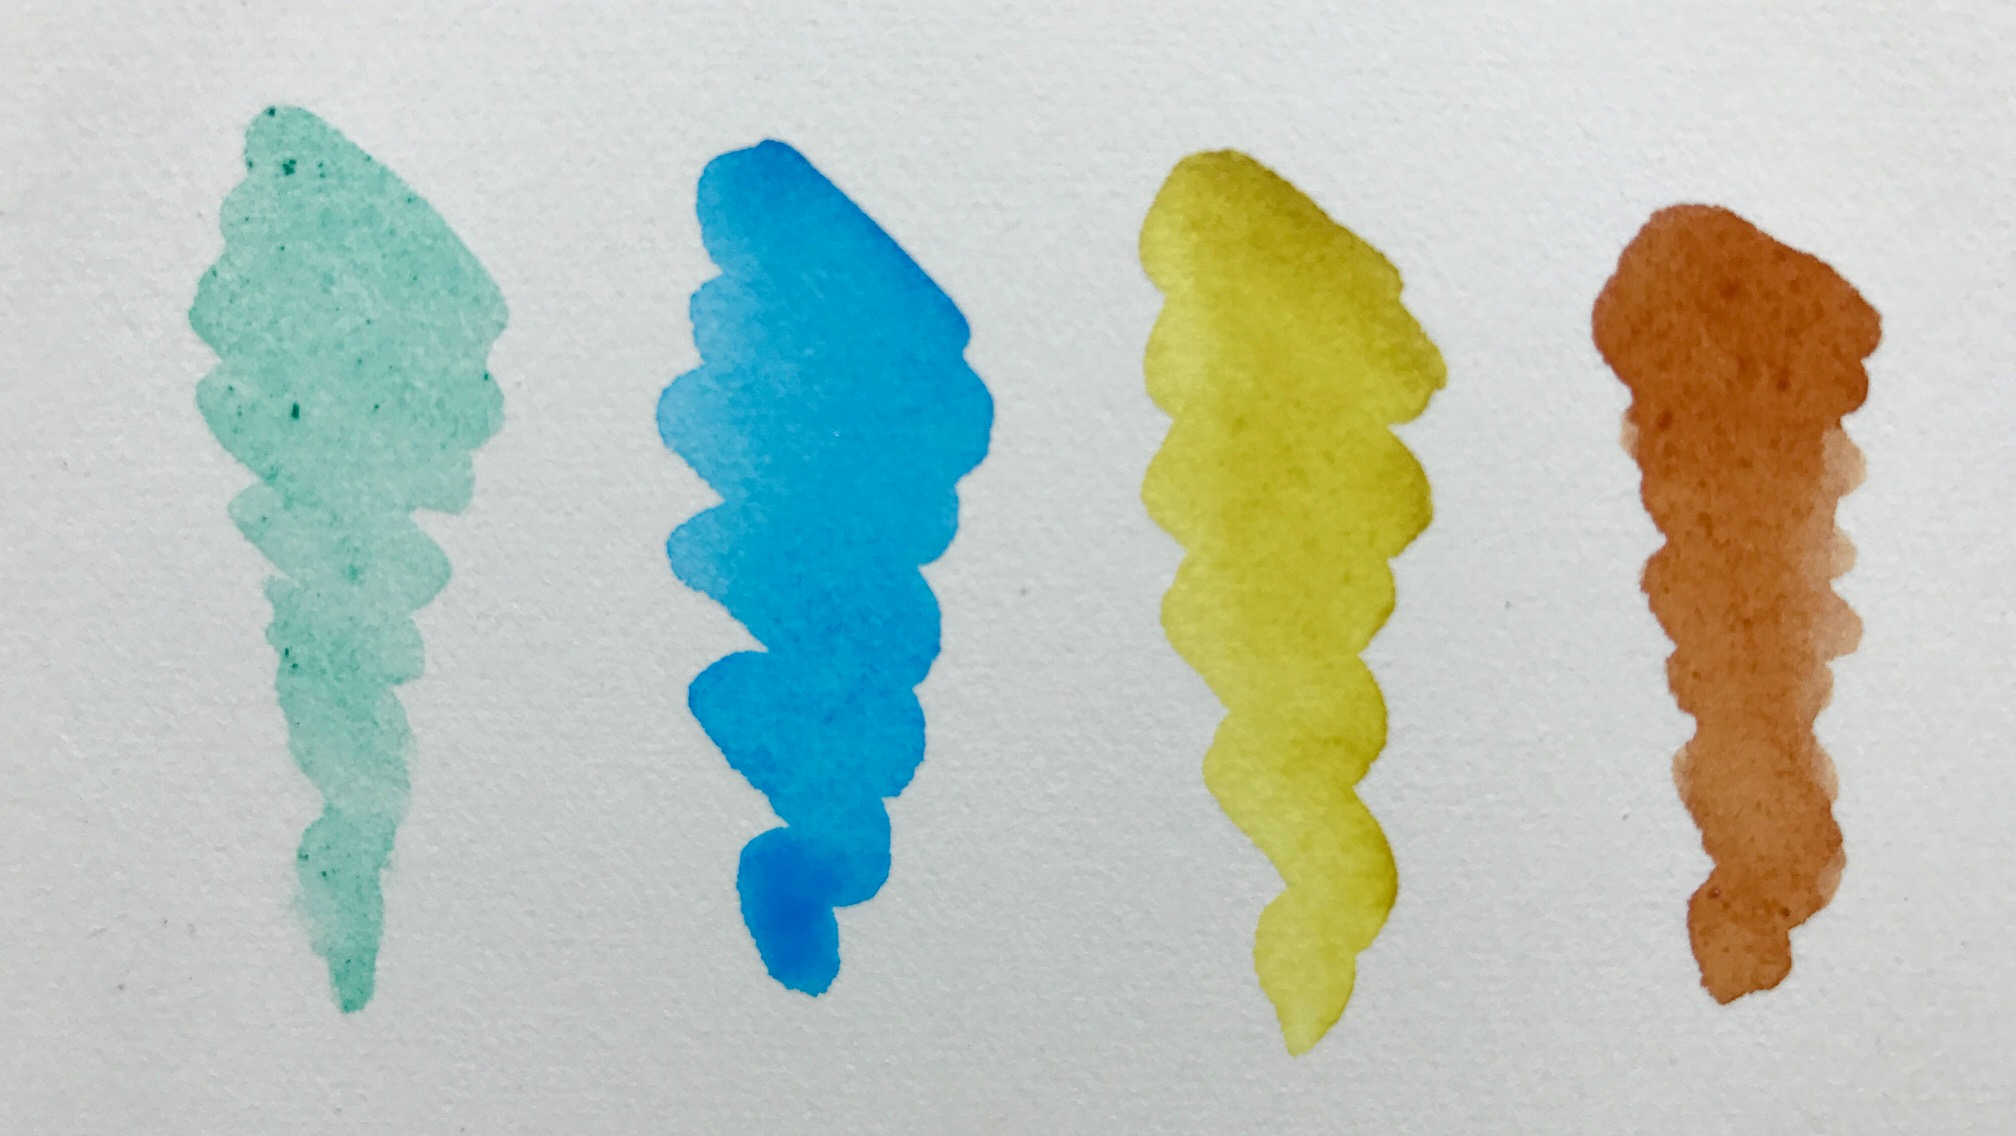 watercolor samples